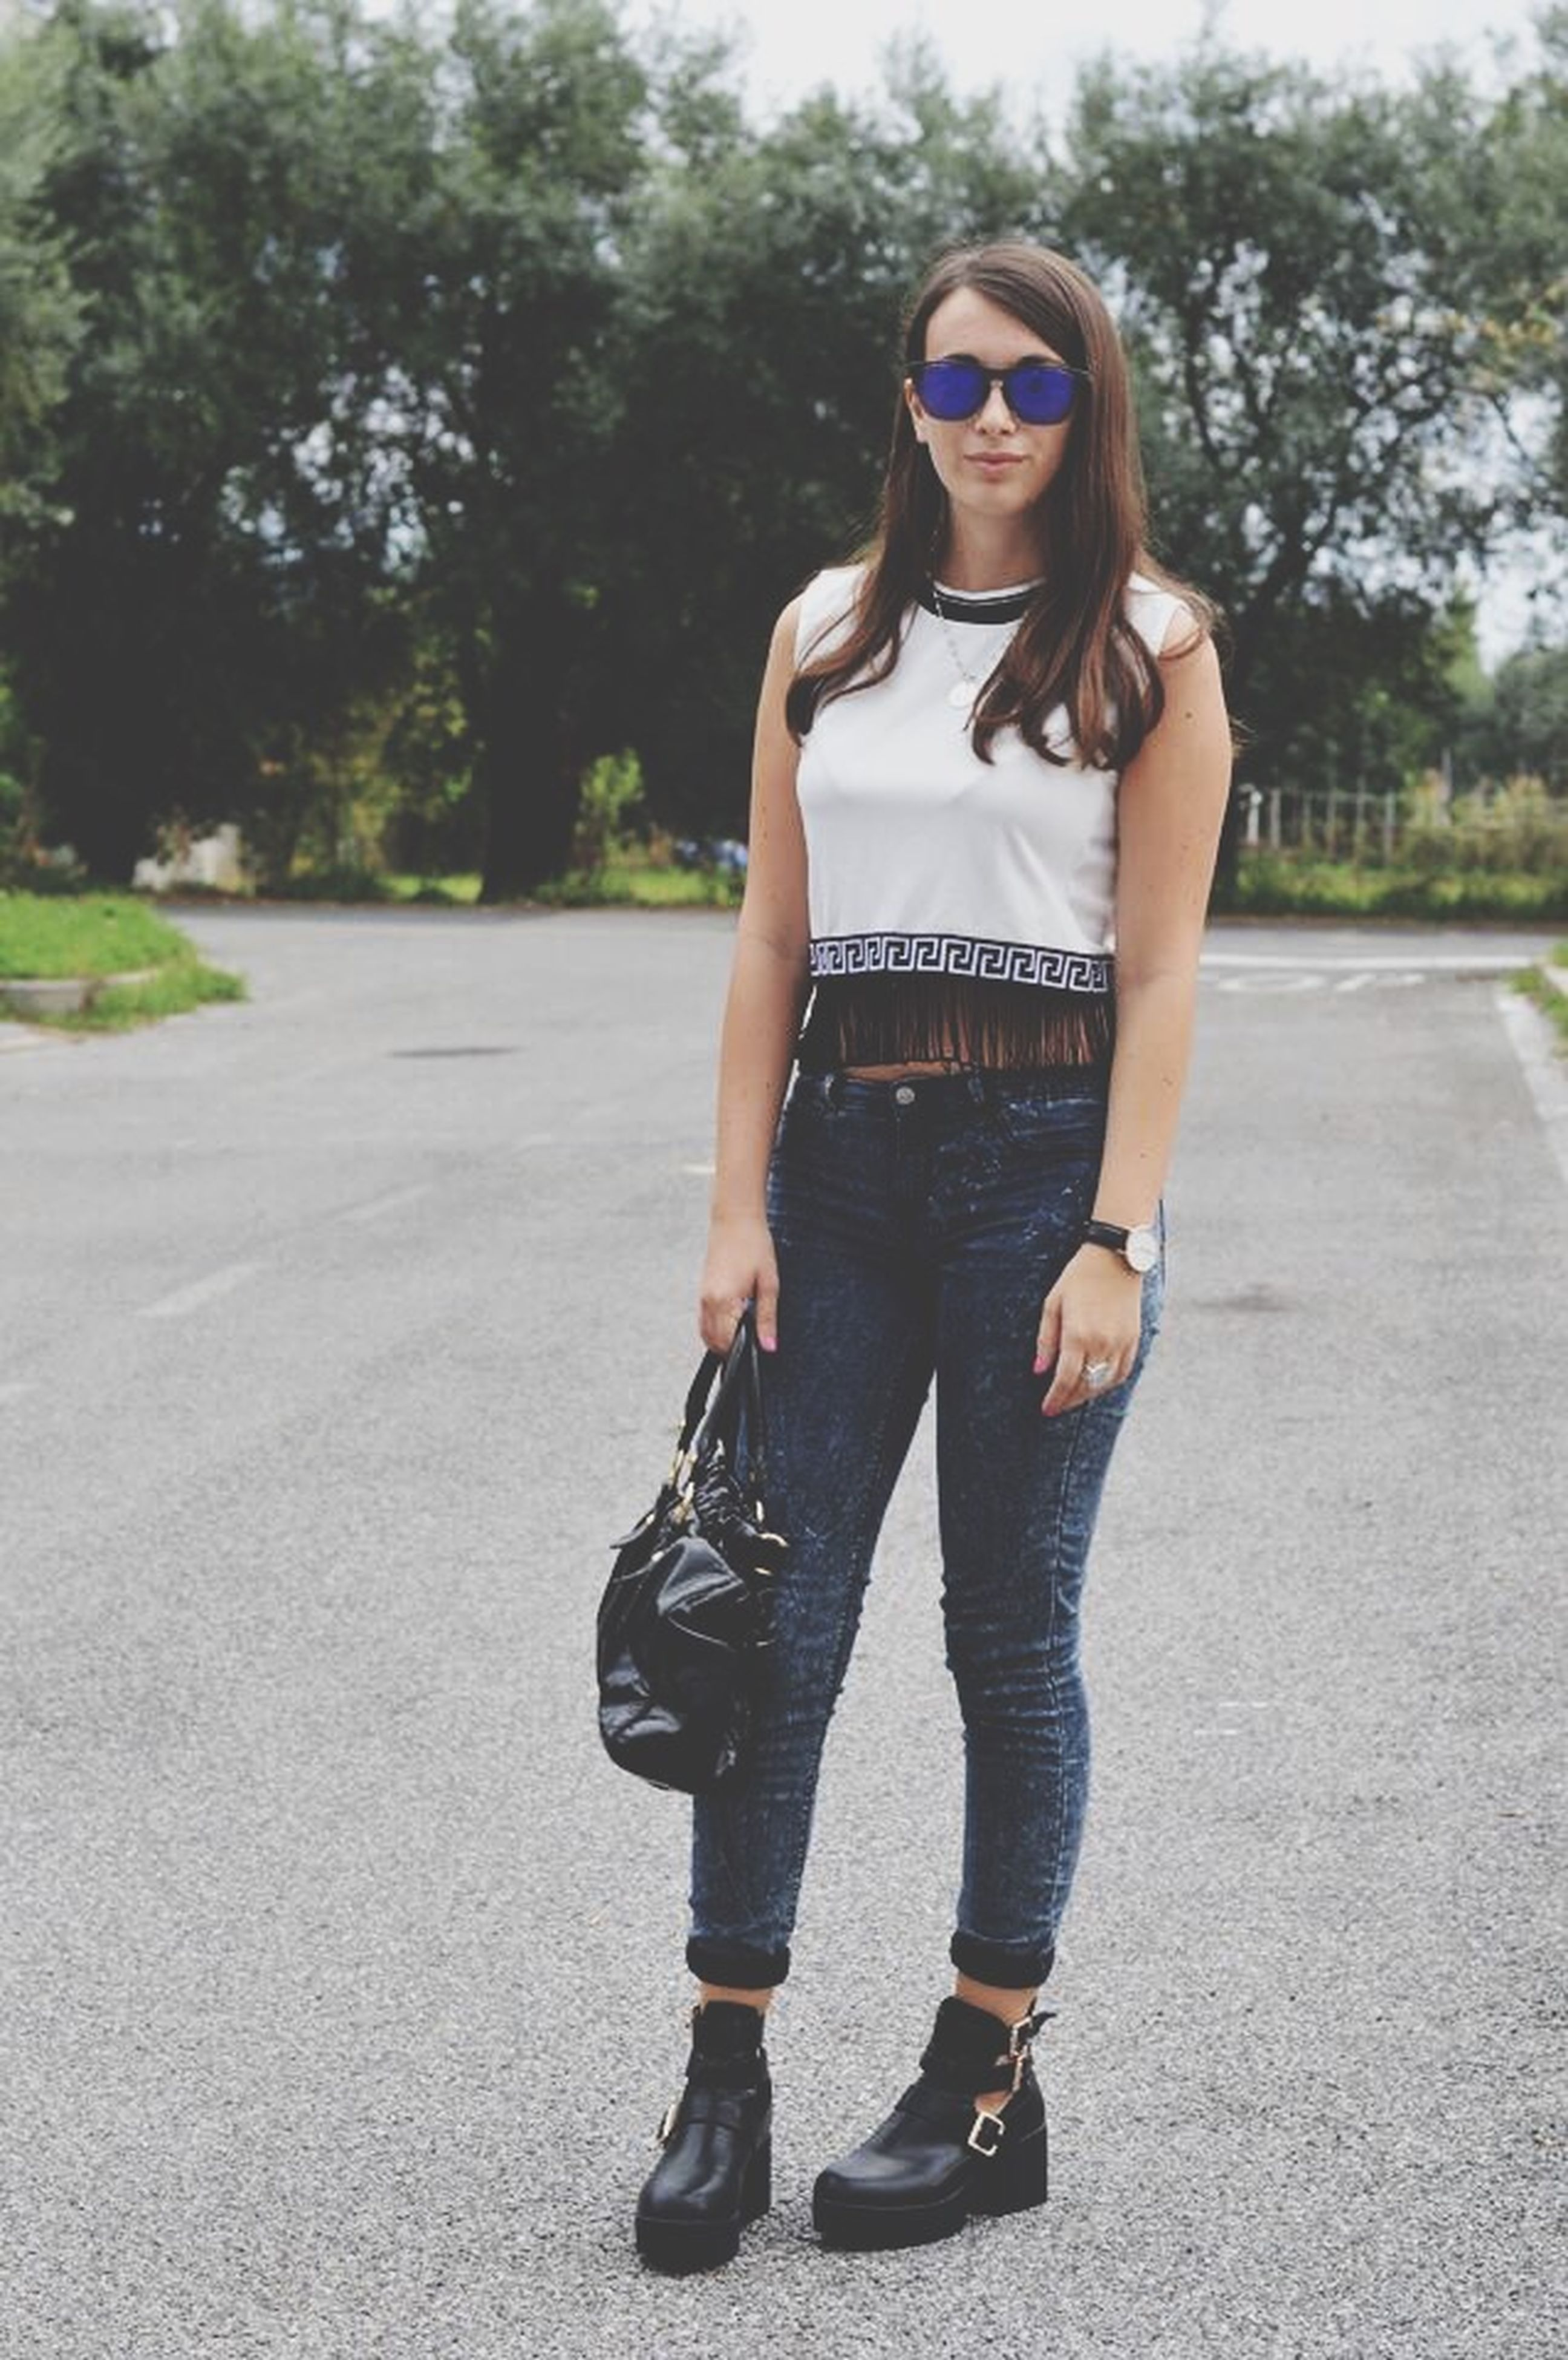 young adult, lifestyles, casual clothing, person, full length, young women, leisure activity, front view, standing, tree, looking at camera, fashion, portrait, road, street, sunglasses, long hair